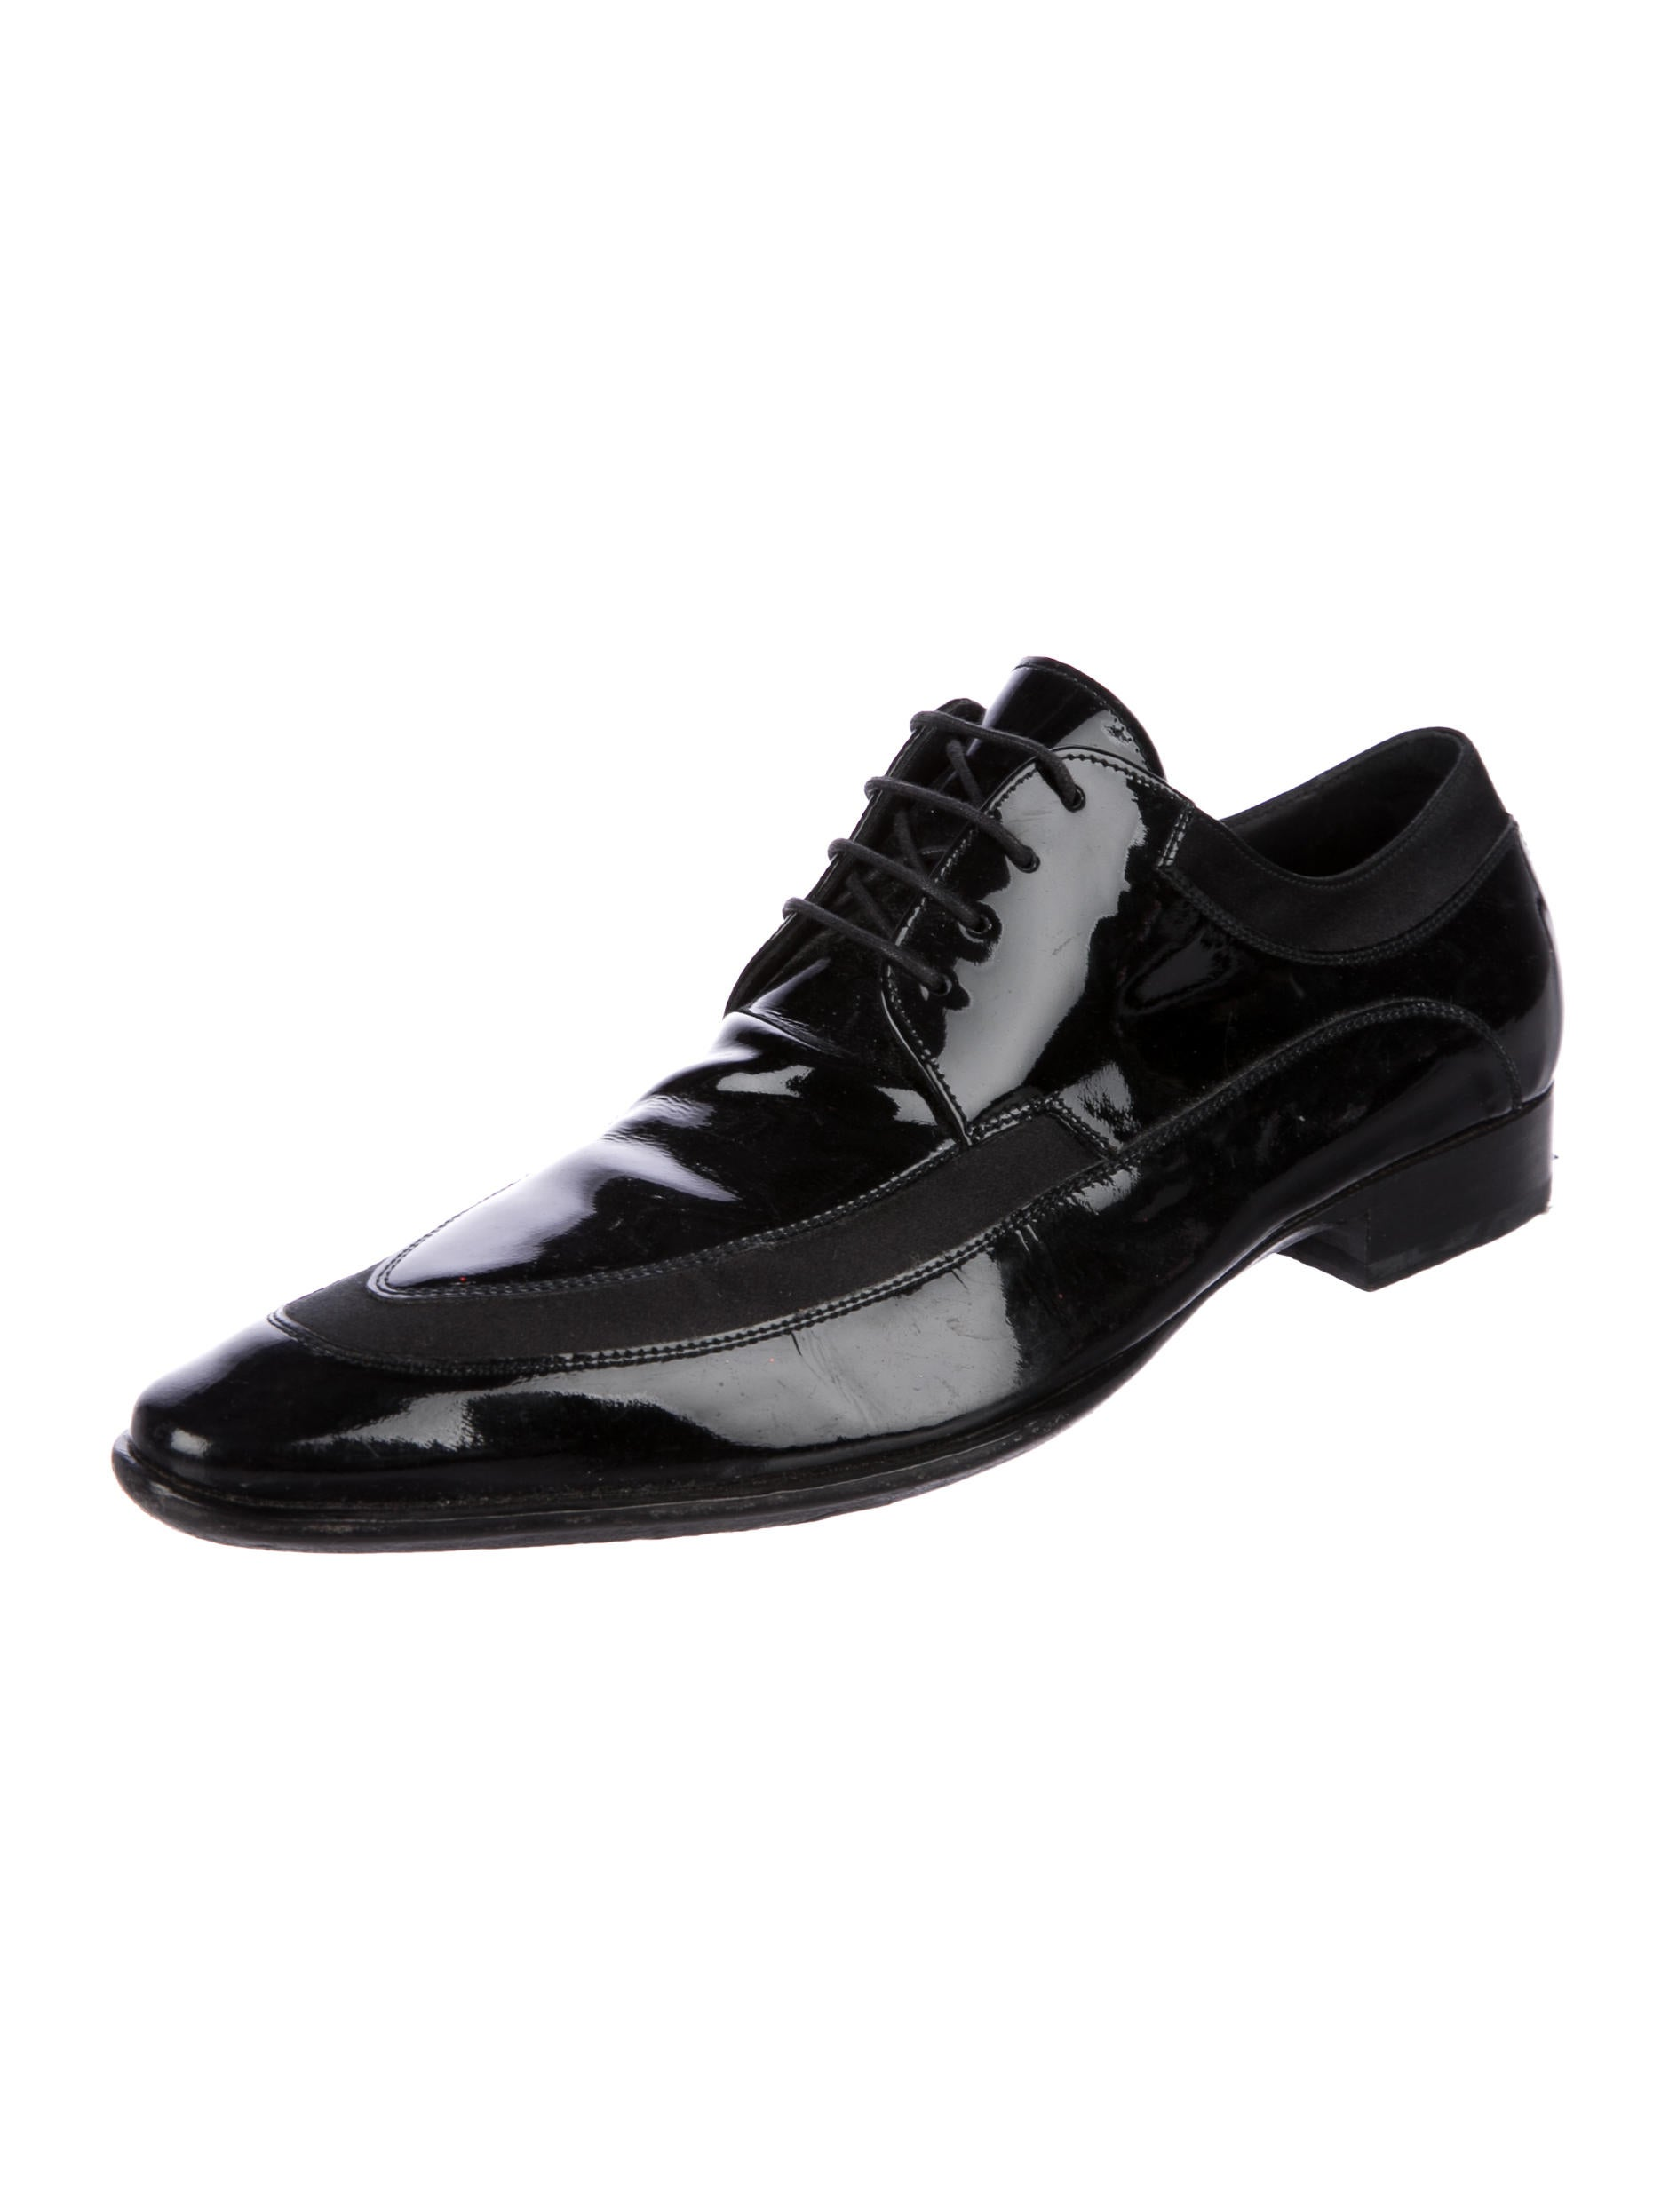 dolce gabbana patent leather derby shoes shoes